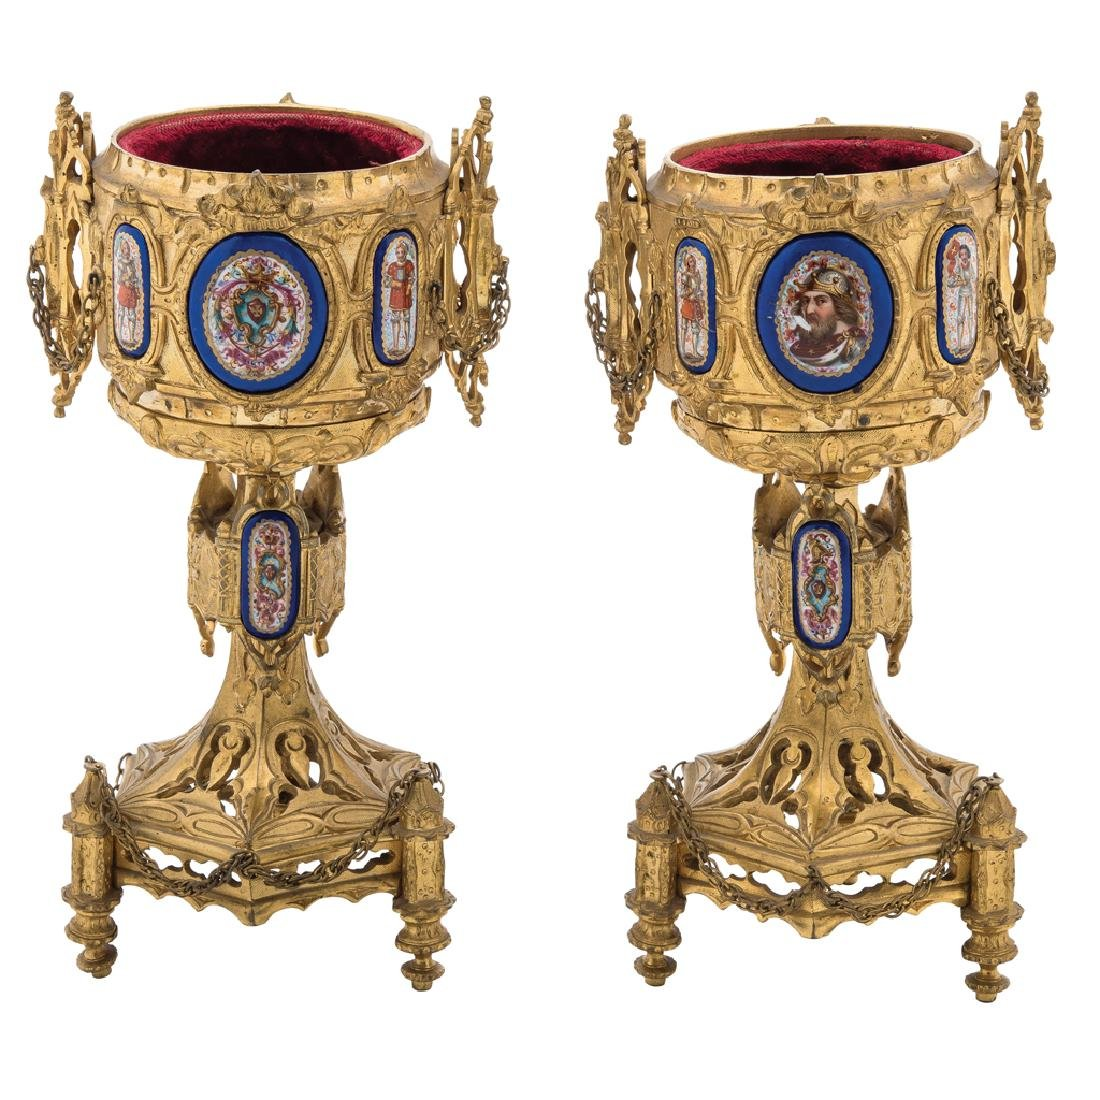 A PAIR OF GOBLETS. 19th CENTURY. Neogotic style. Gilt